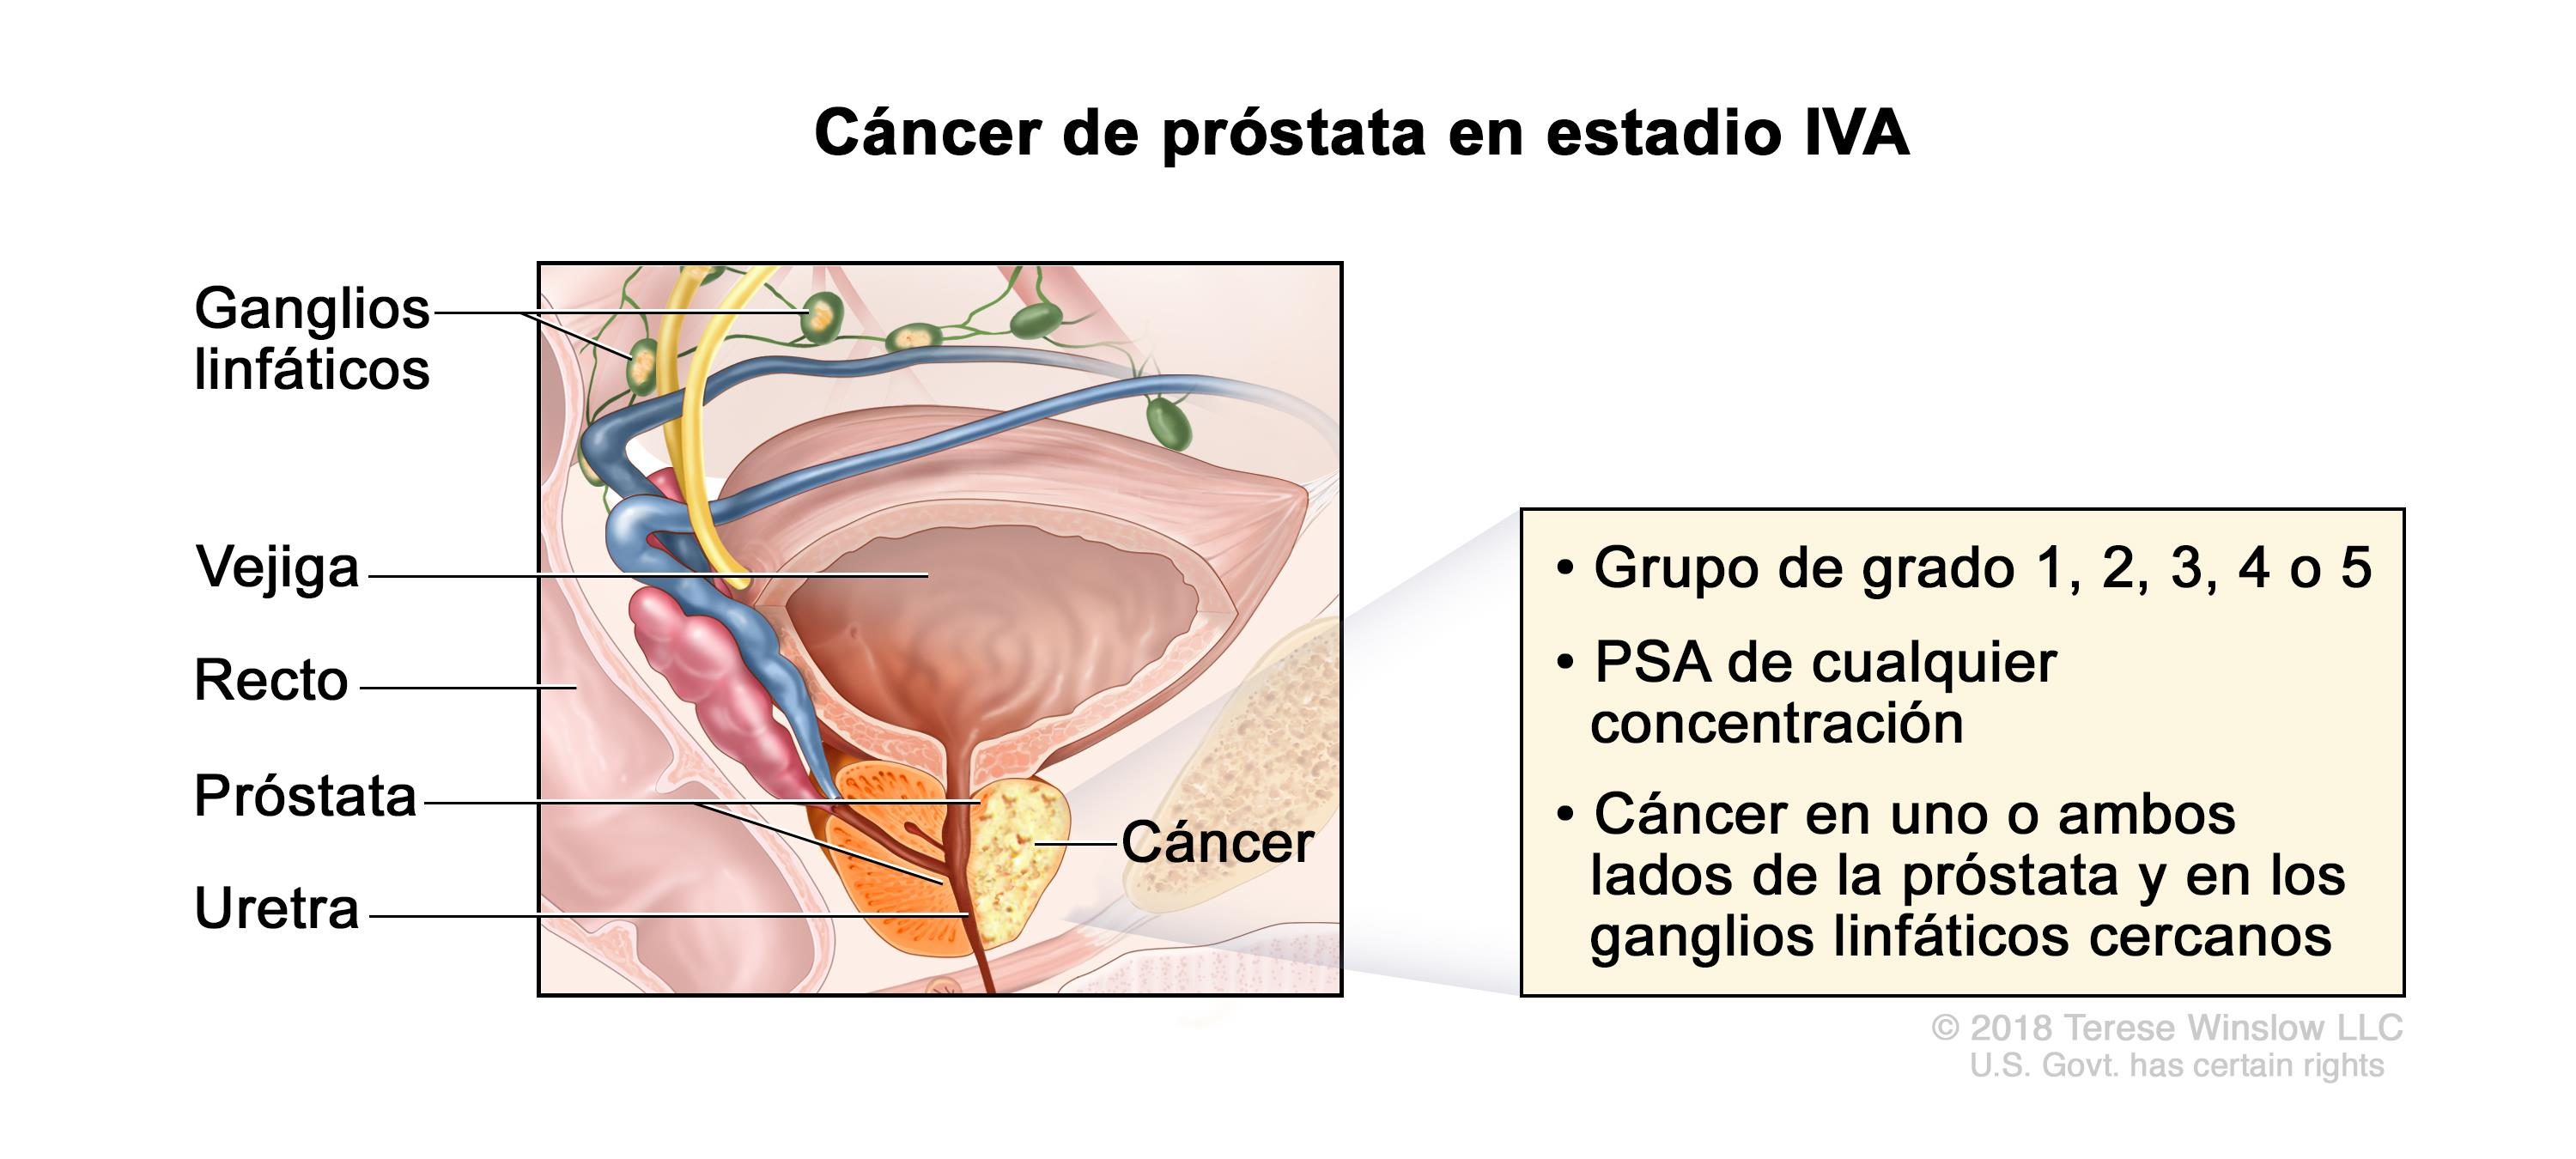 cancer de prostata fisiopatologia helminth root word definition